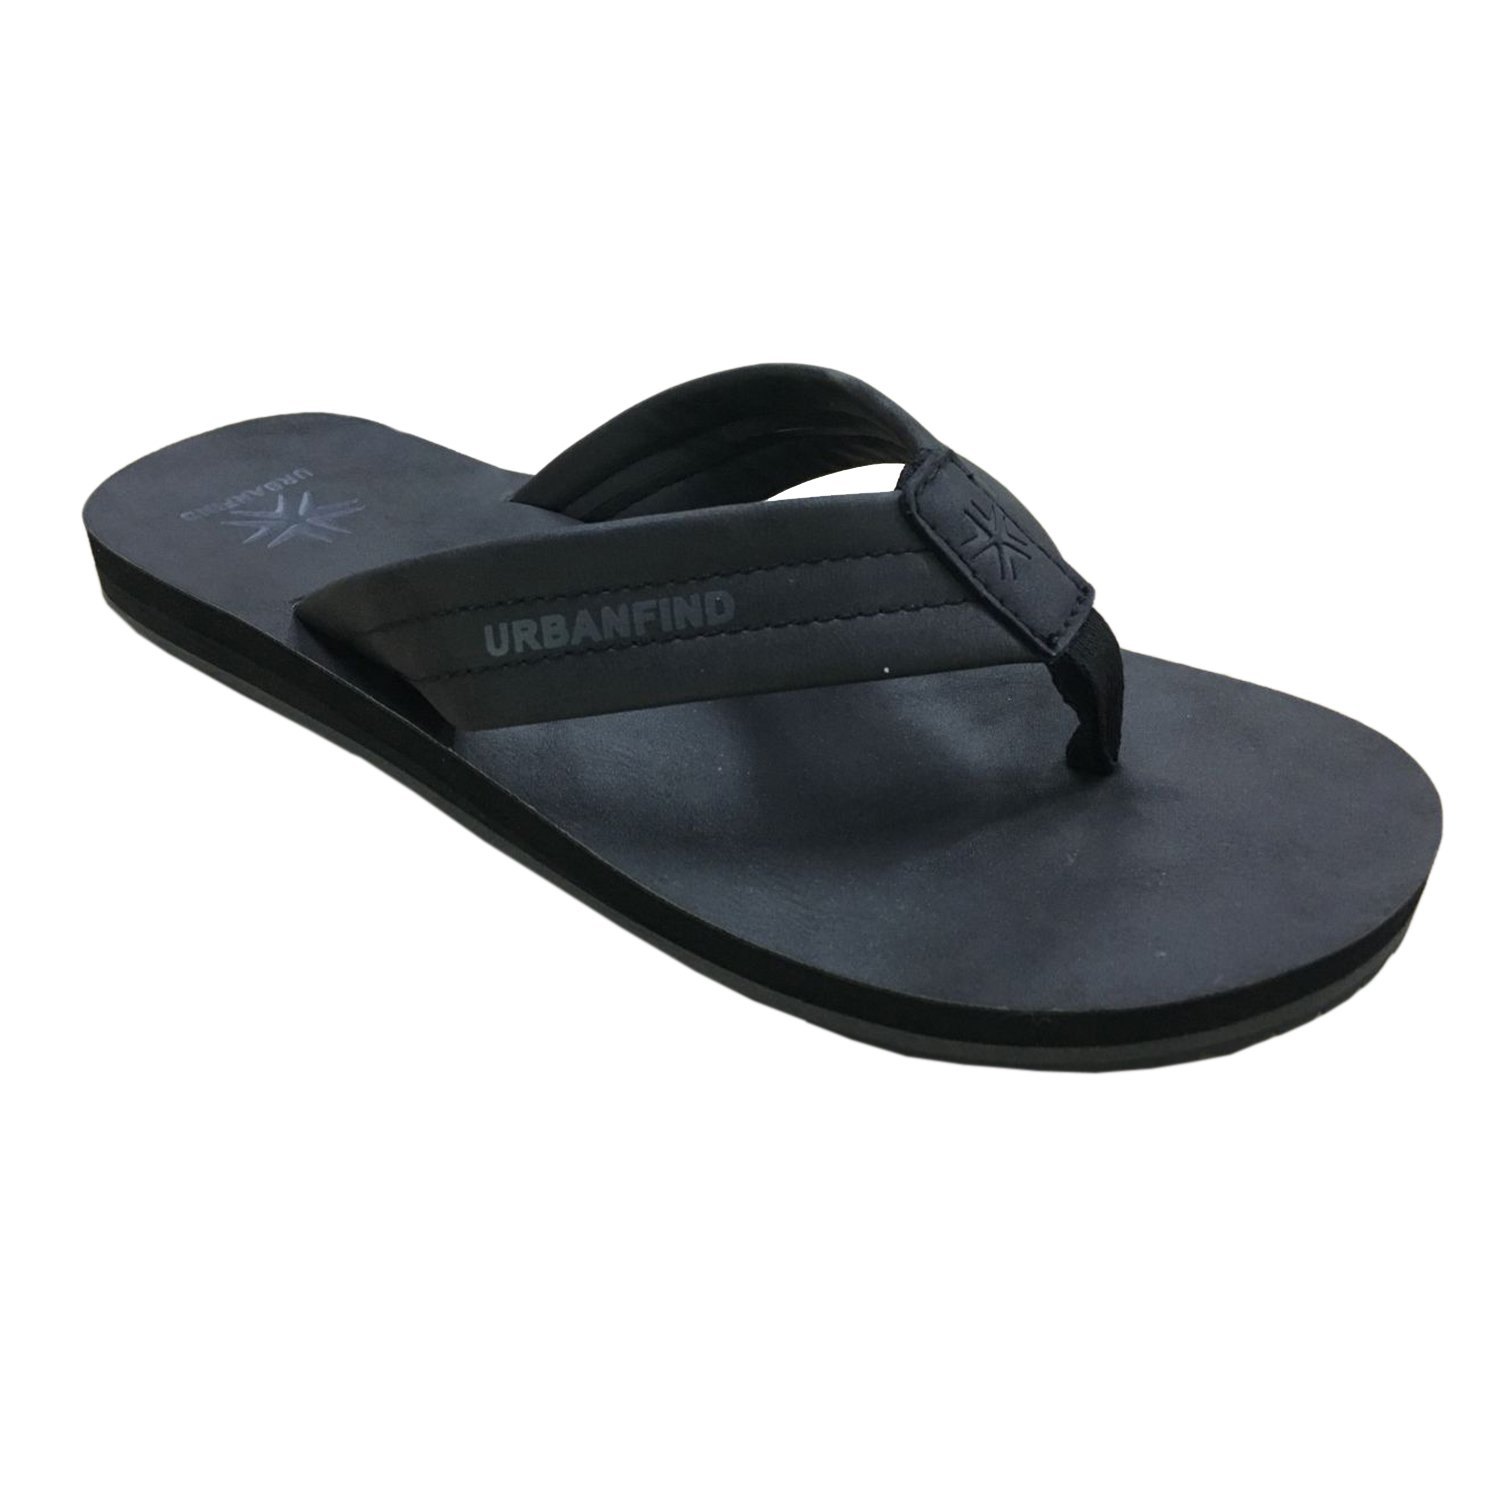 URBANFIND Men's Flip Flops Arch Support Sandals Comfortable Leather Thongs Slippers Black, 8 D(M) US